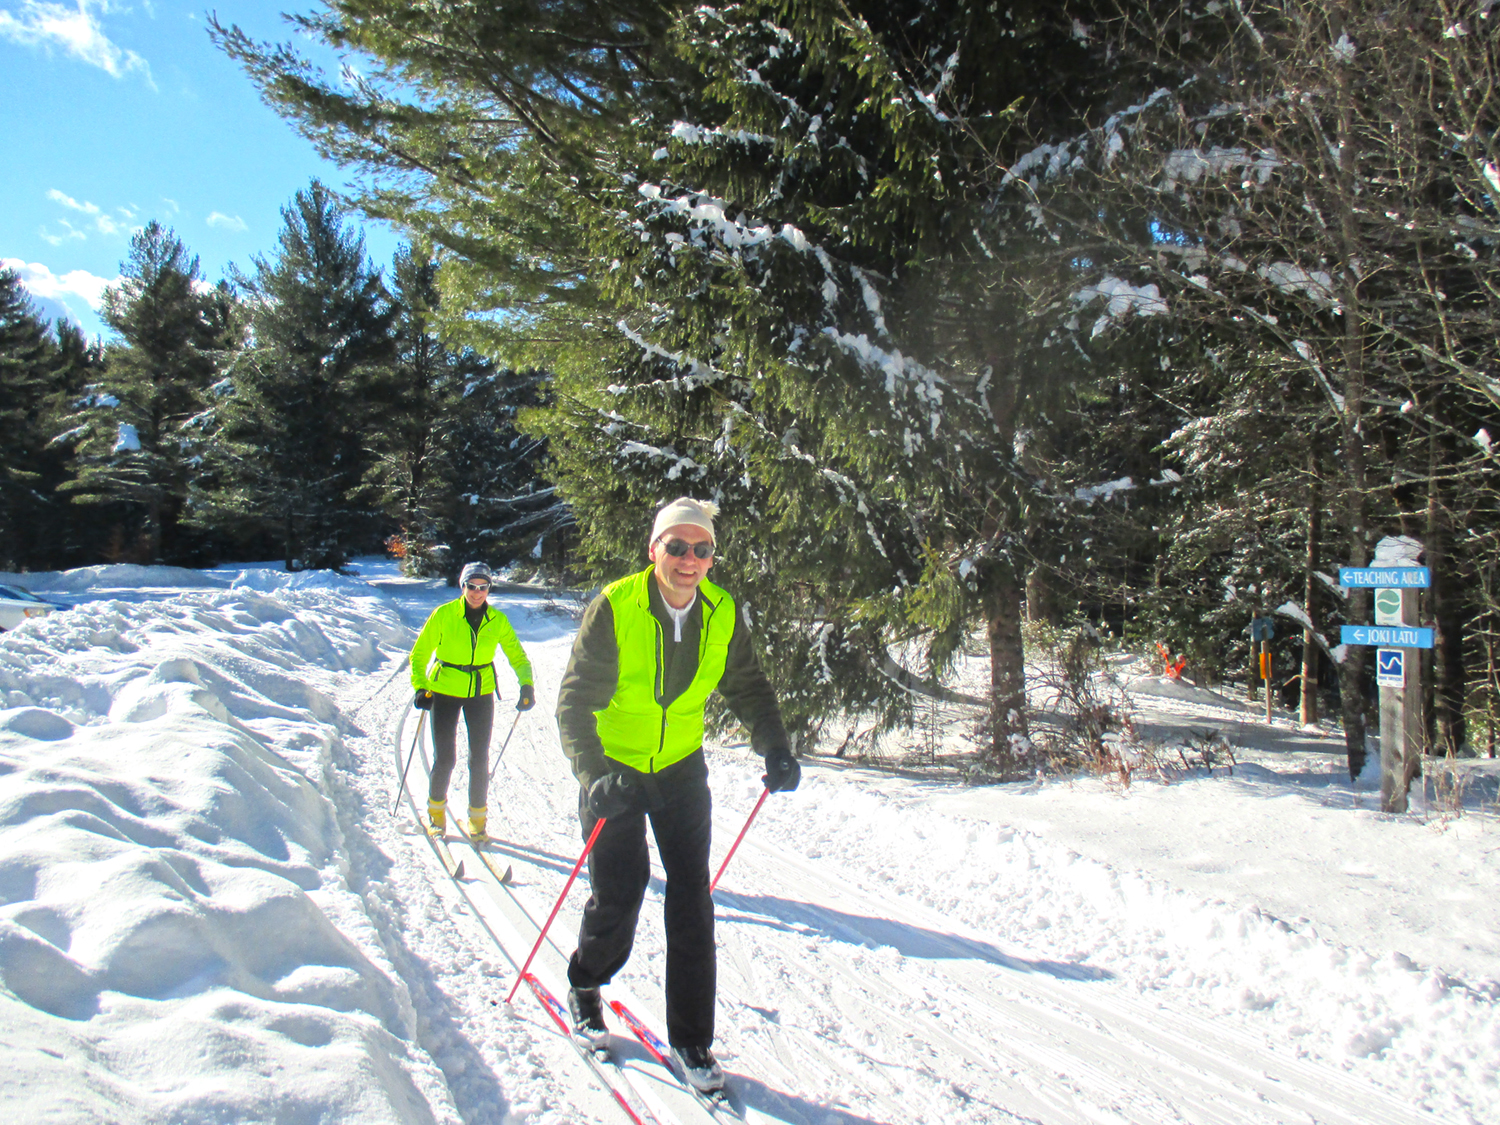 Happy skiers on New Year's Day with groomed powder conditions at Lapland Lake Nordic Vacation Center in Benson.  Paul Zahray